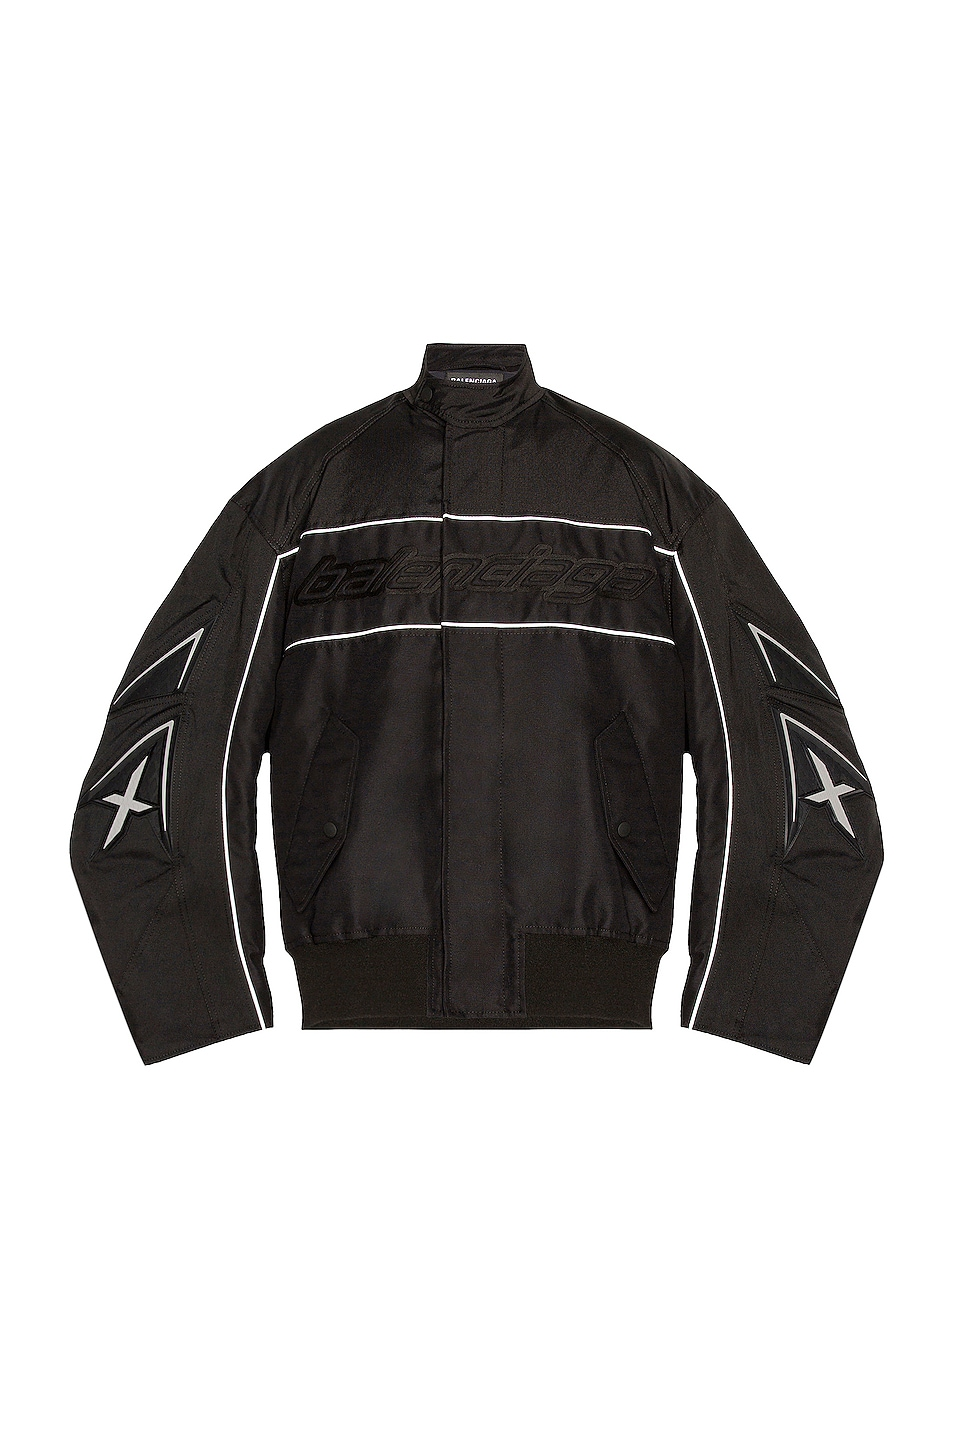 Image 1 of Balenciaga Racing Jacket in Black & Grey